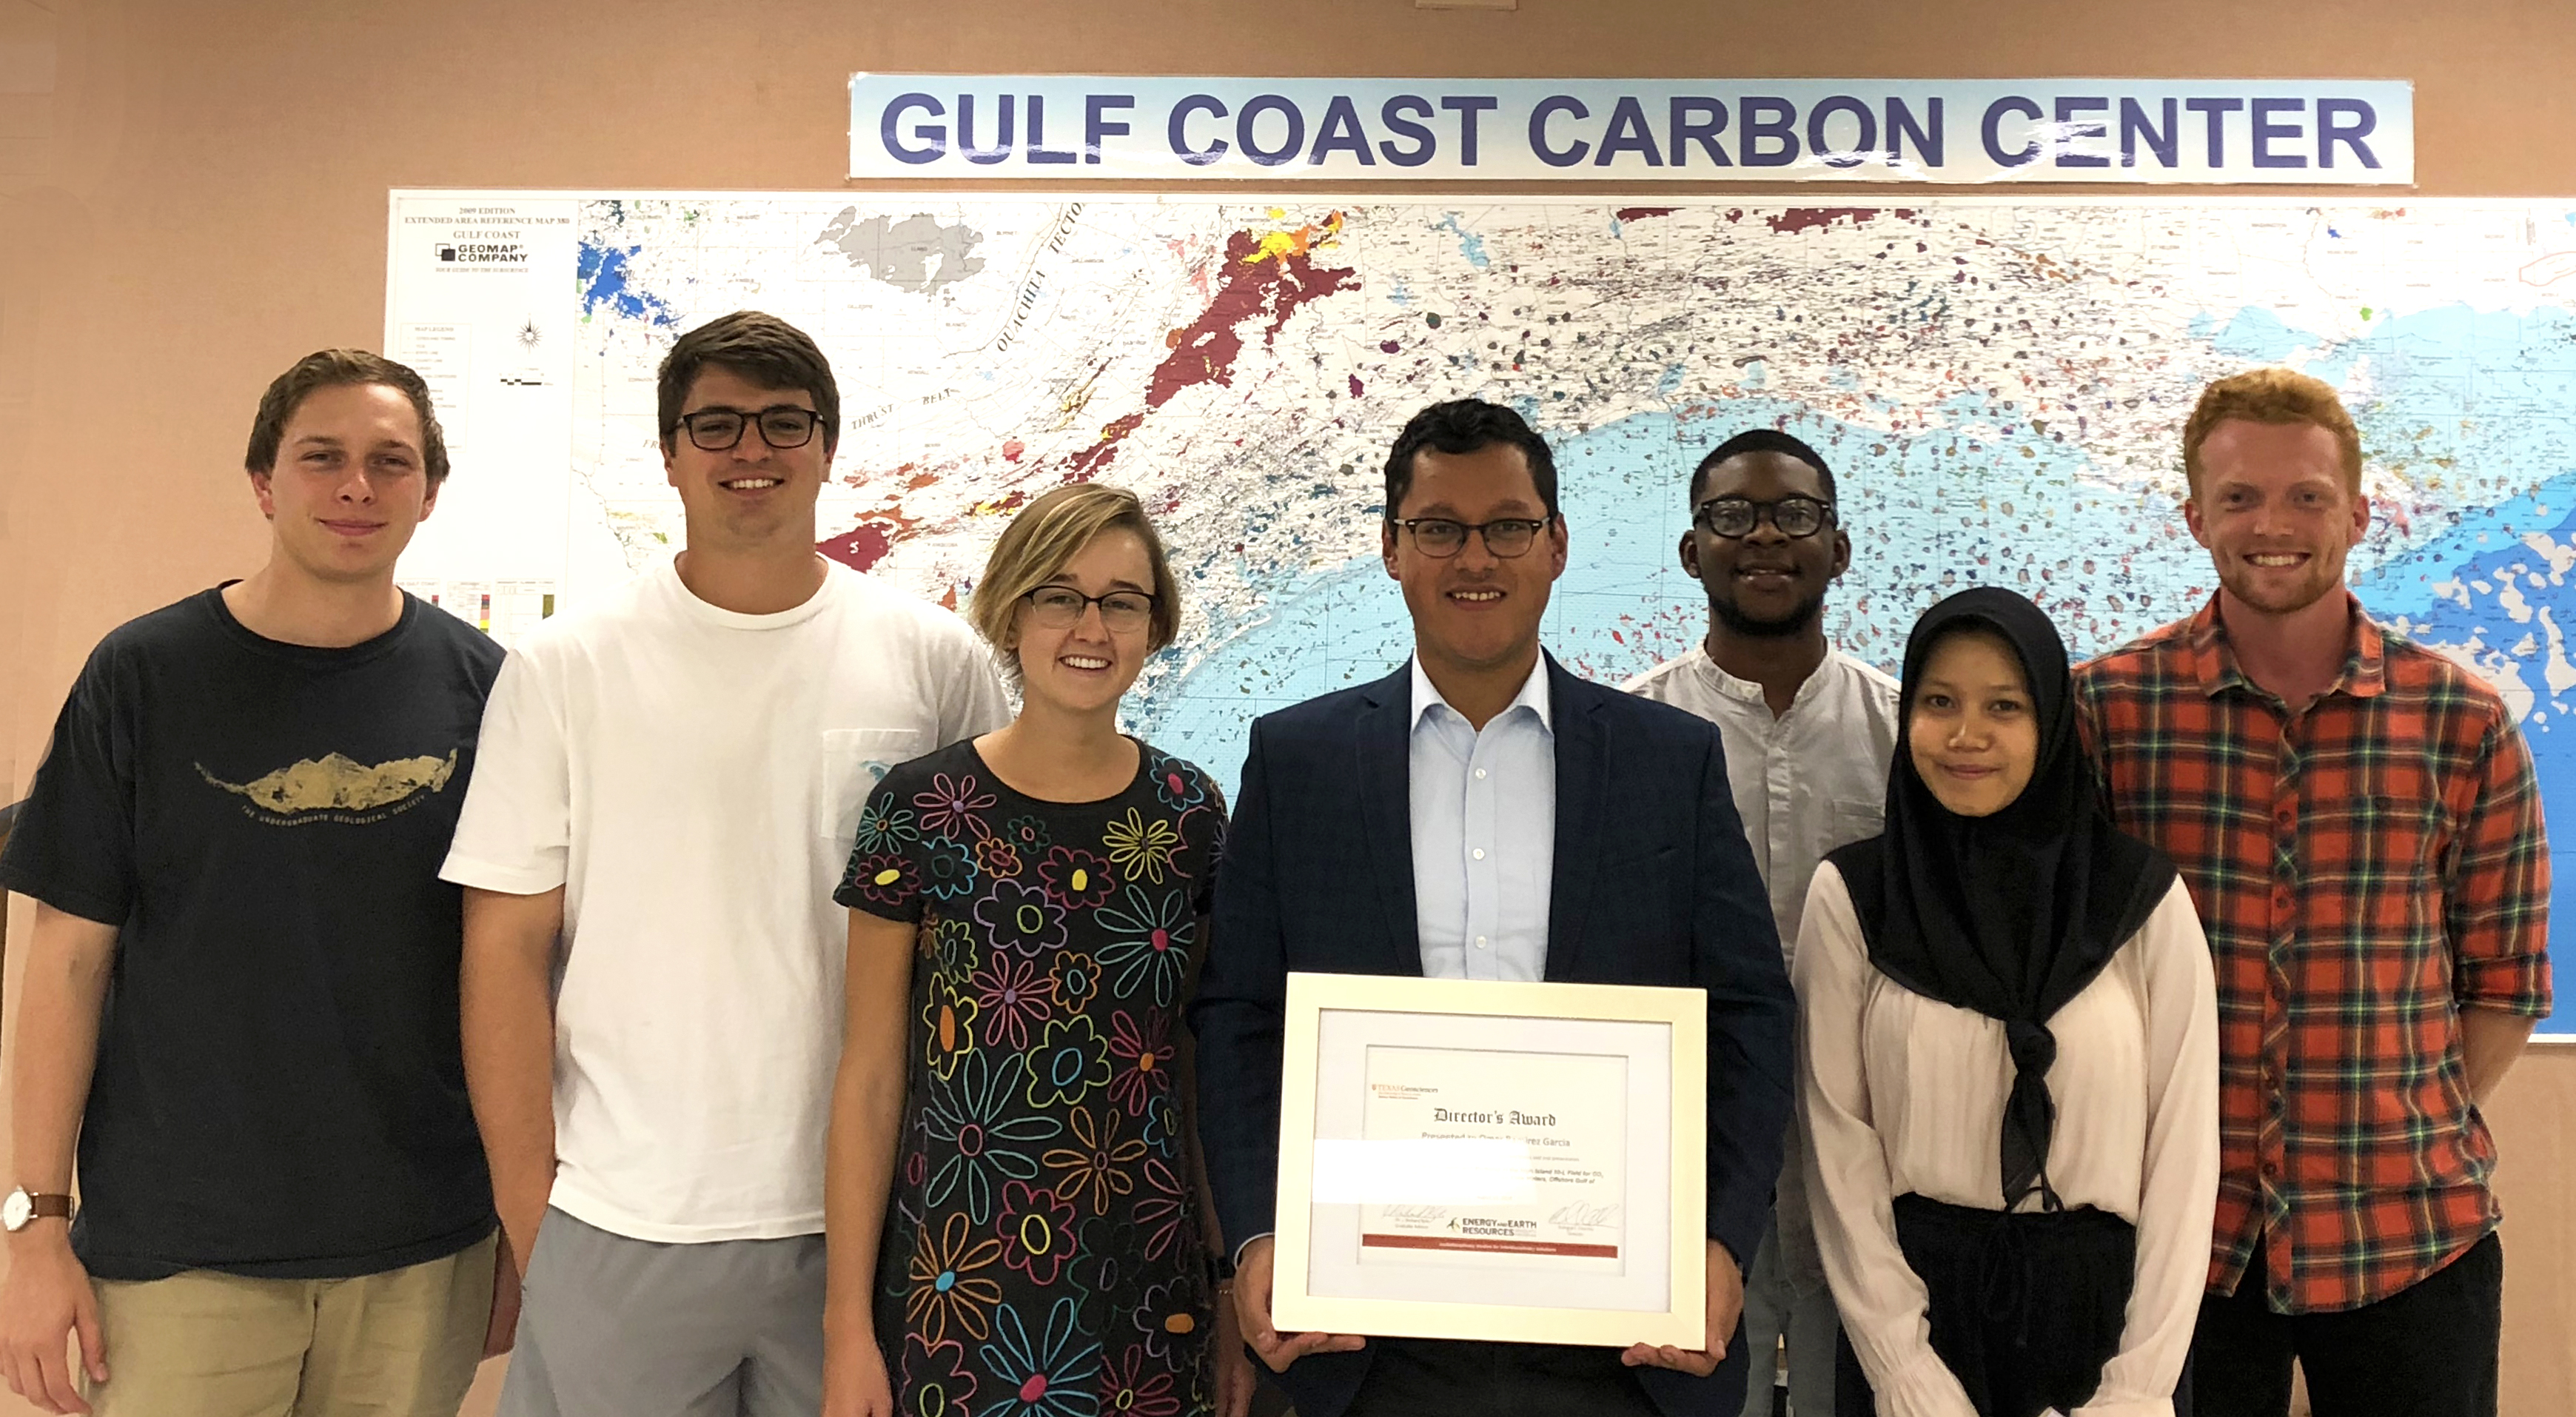 Omar stands in the middle of the incoming master's graduate students with his director's award for excellent thesis and Margaret, an undergraduate researcher